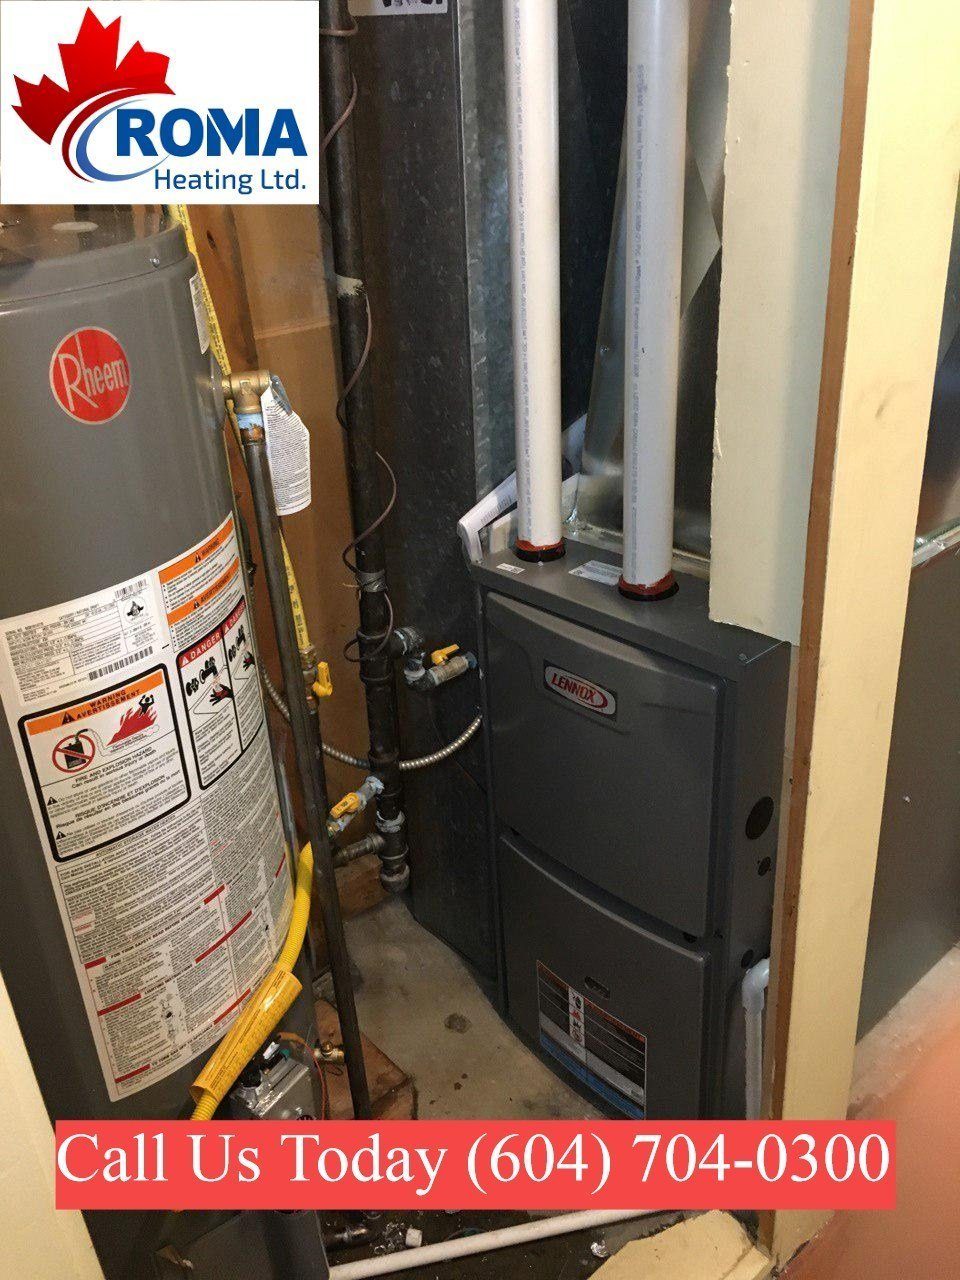 Furnace Repair Surrey, Furnace Repair Abbotsford and Furnace Repair Cloverdale Area